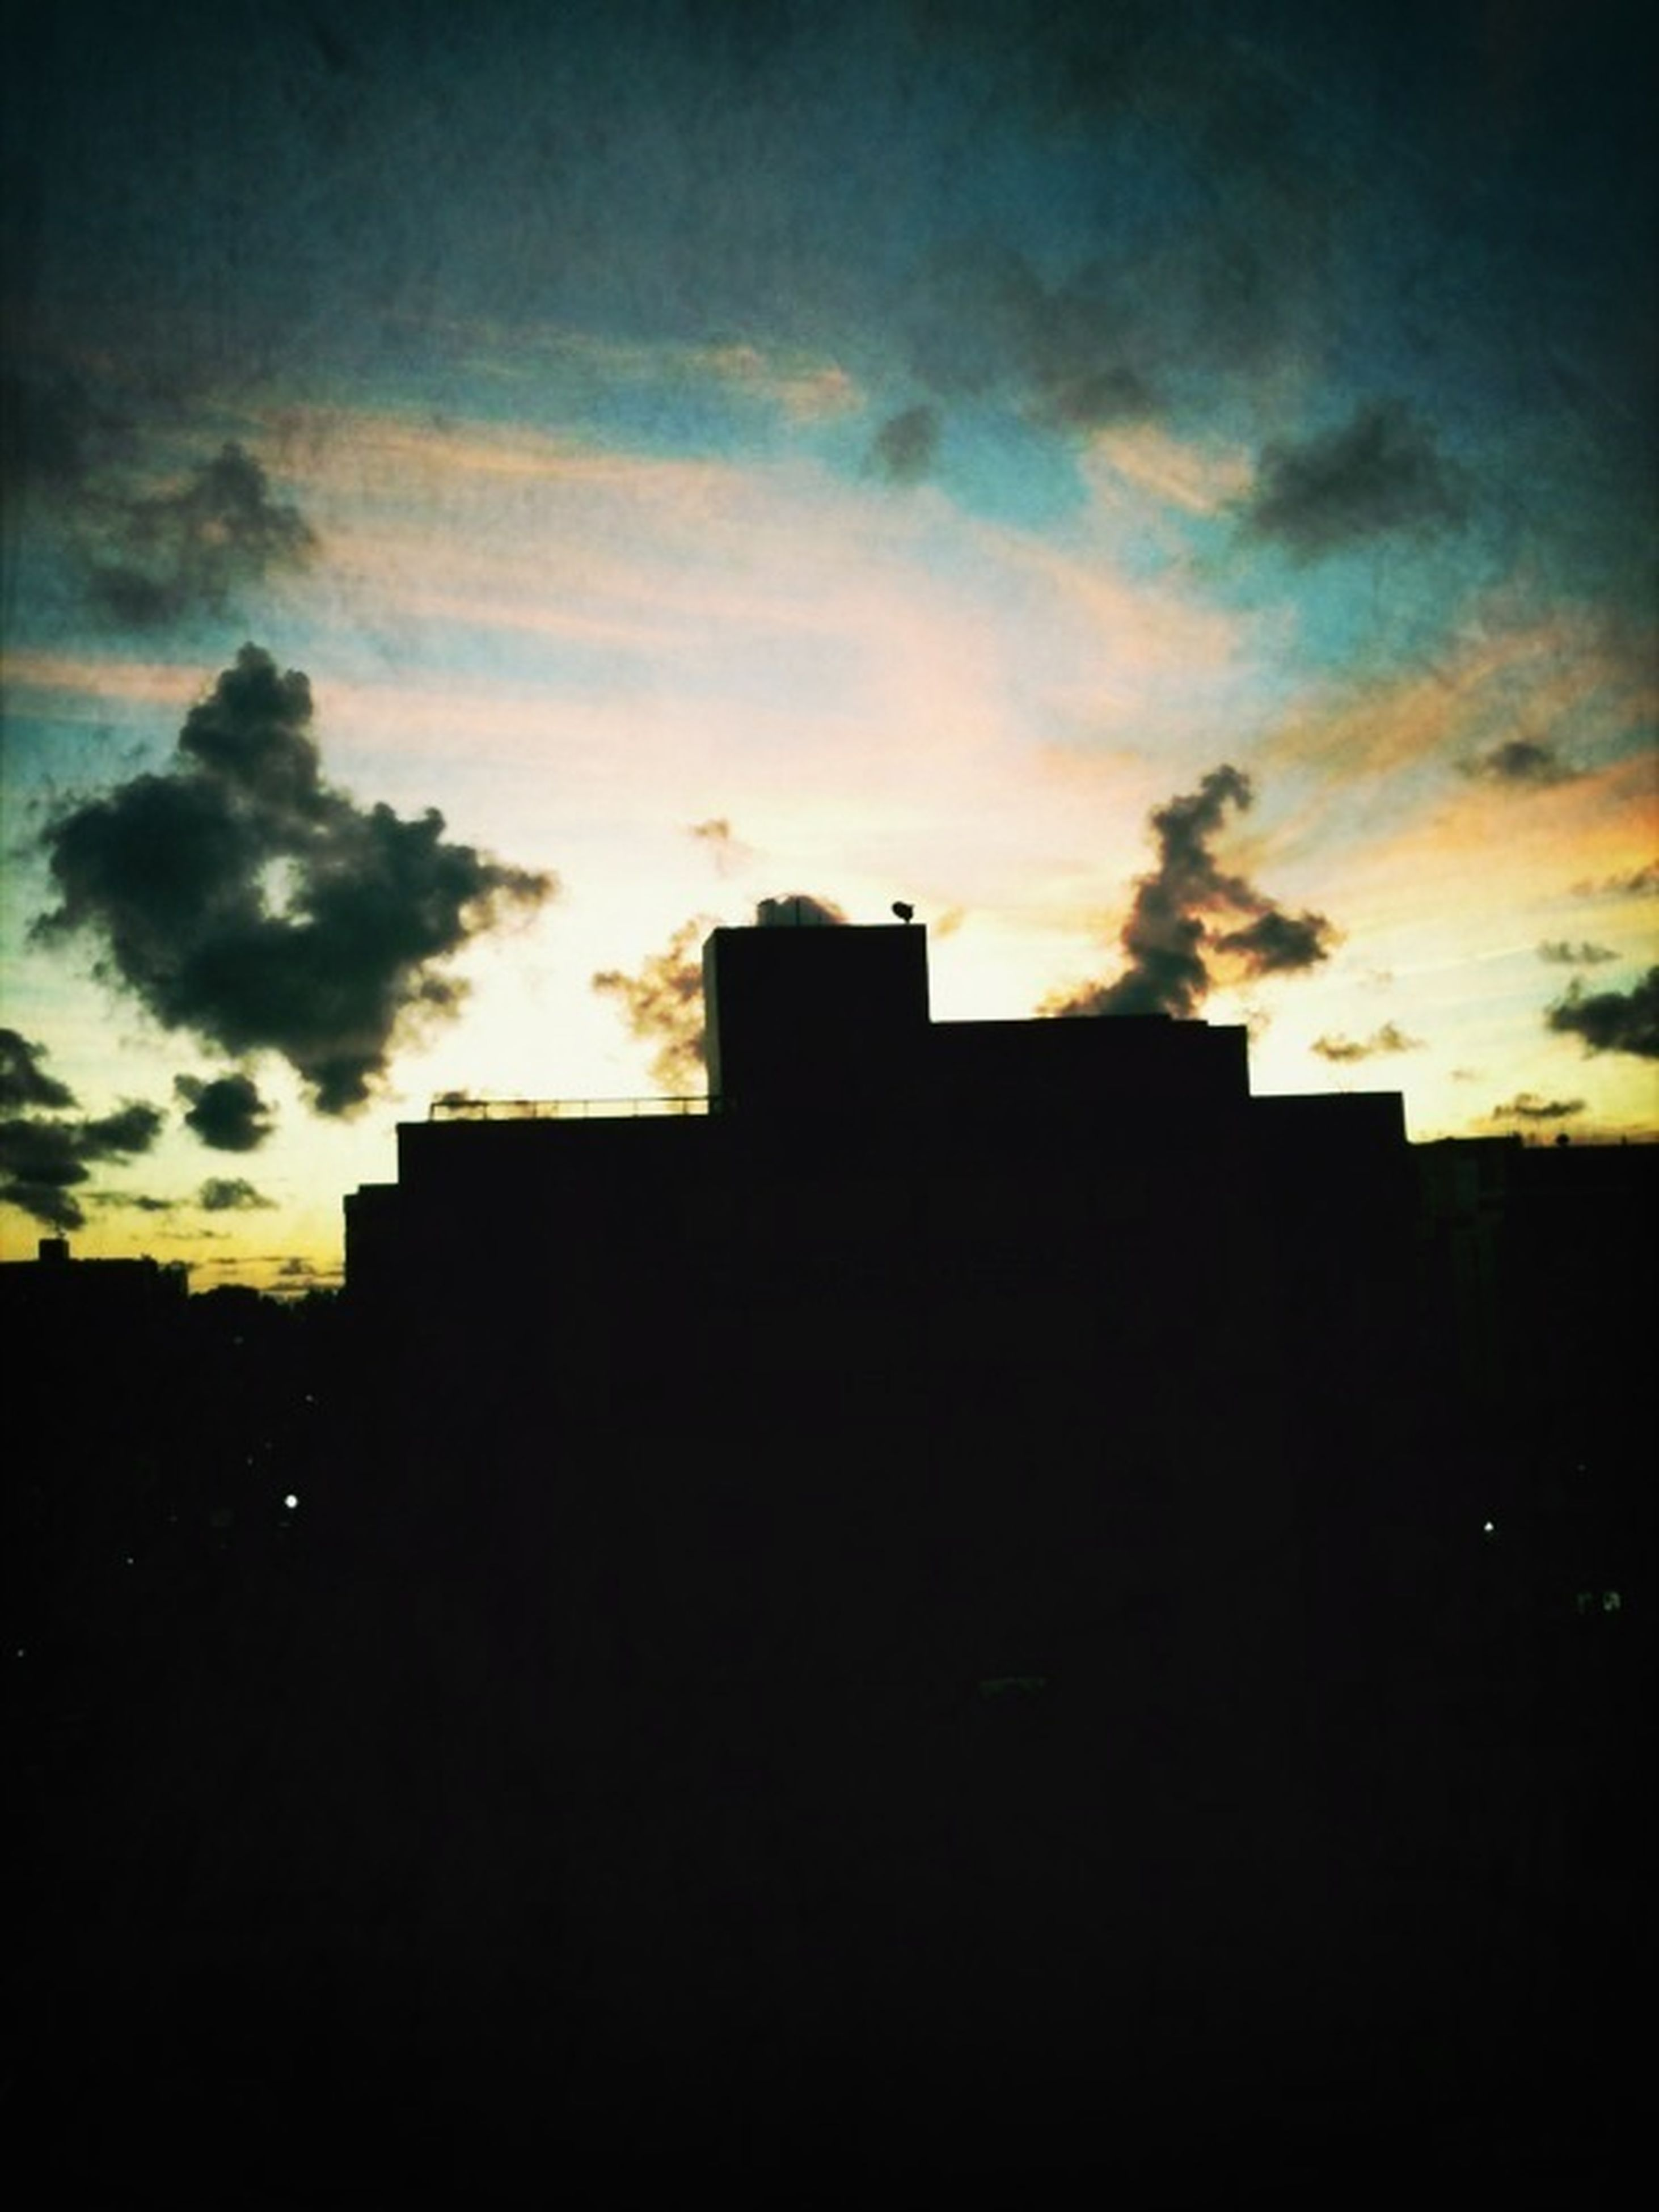 architecture, silhouette, built structure, building exterior, sunset, sky, low angle view, cloud - sky, dark, dusk, building, cloud, house, outdoors, outline, residential structure, no people, cloudy, orange color, dramatic sky